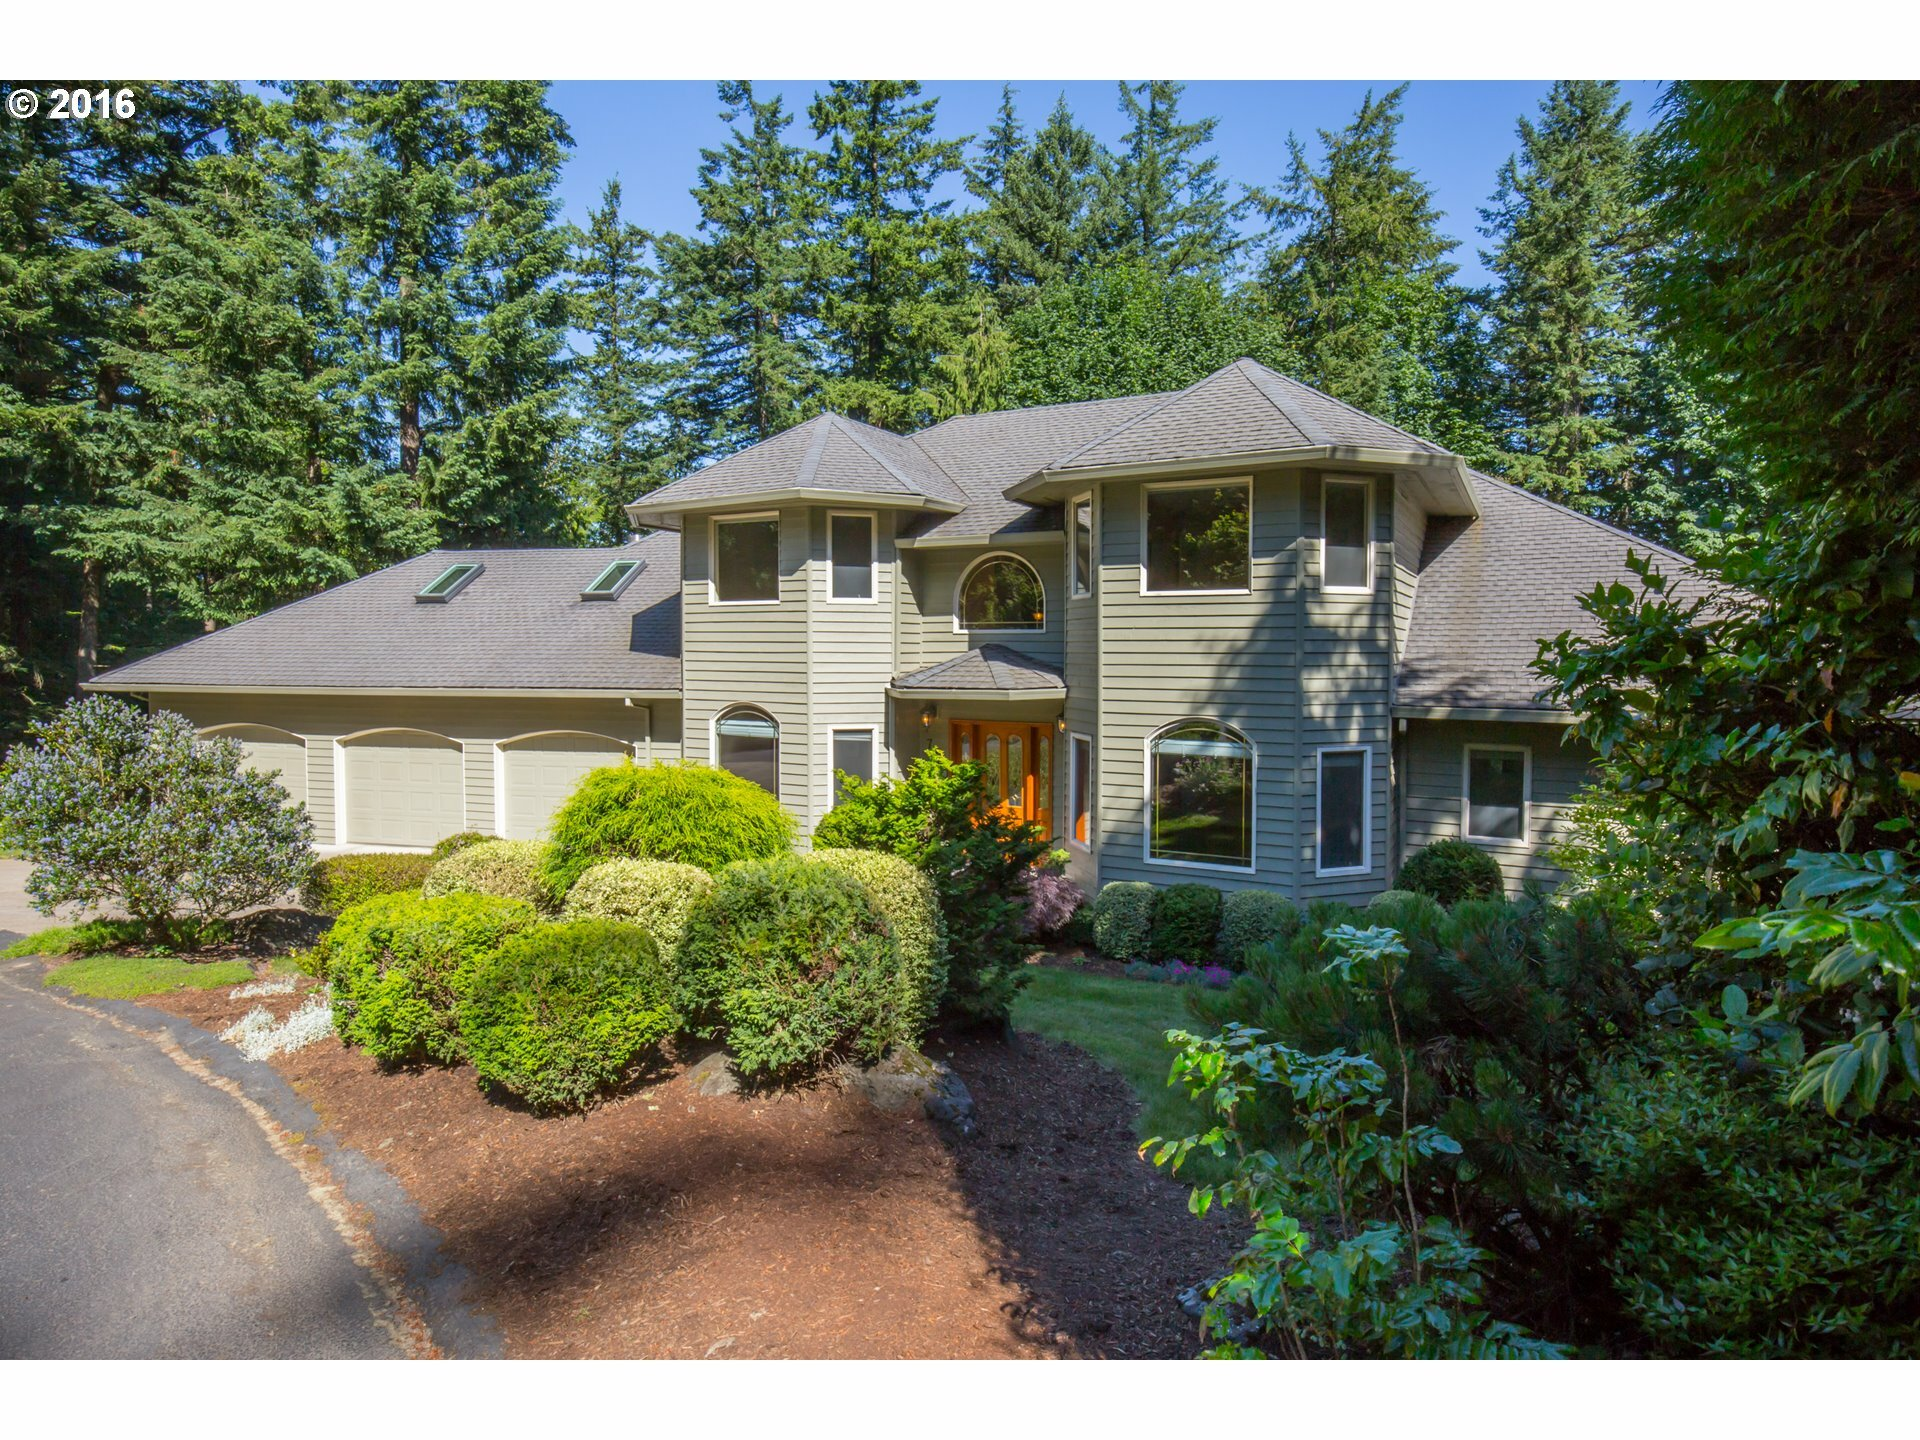 7240 Nw Summitview Dr, Portland, OR - USA (photo 1)